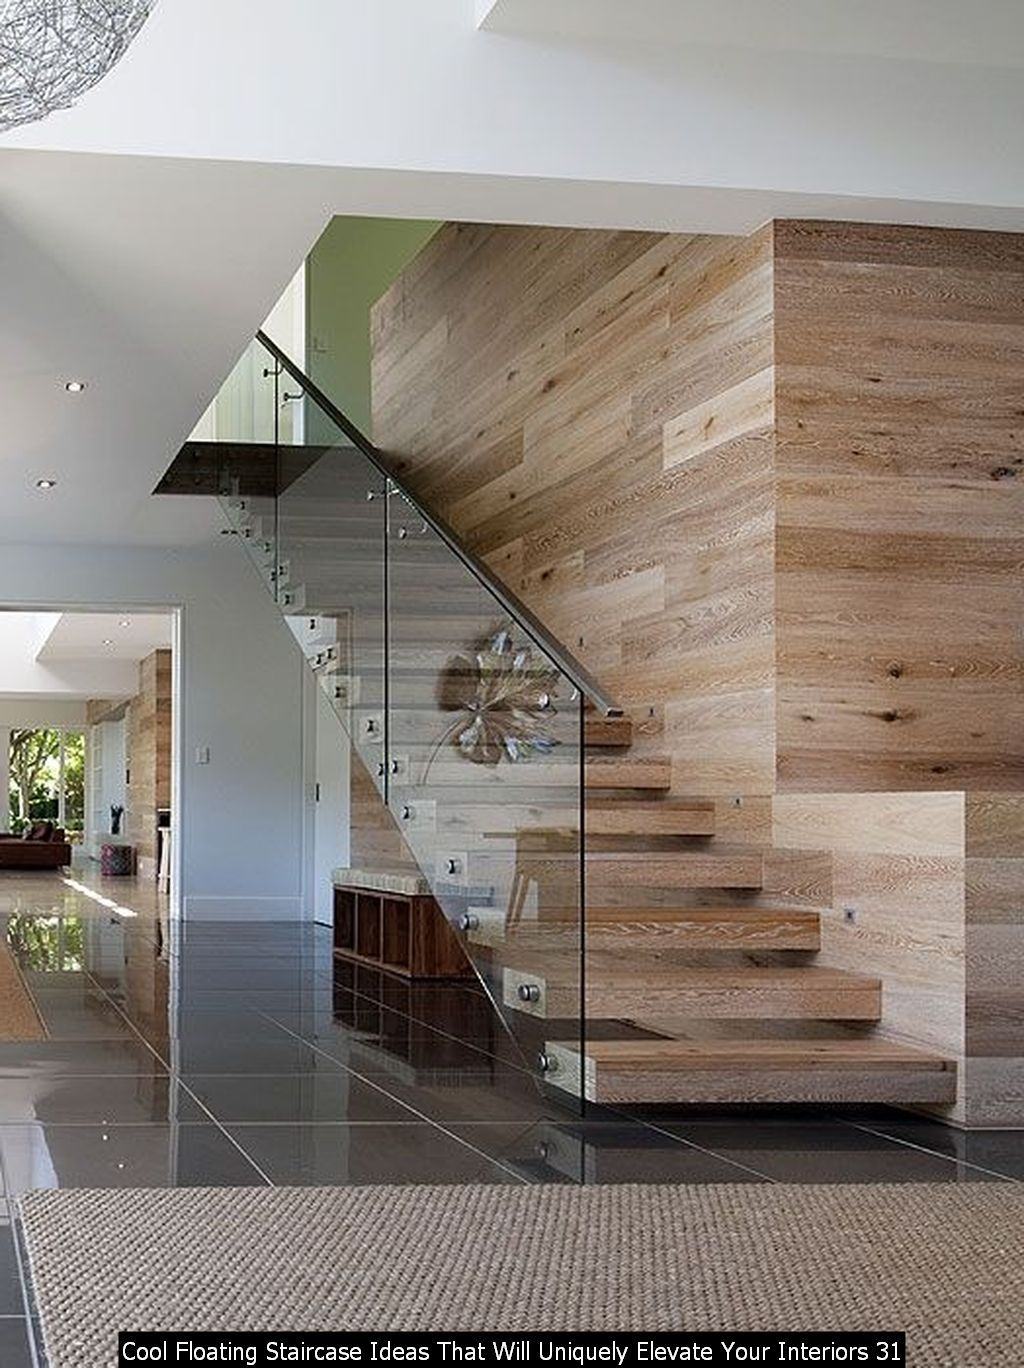 30 Cool Floating Staircase Ideas That Will Uniquely Elevate Your Interiors In 2020 European White Oak Floors Beautiful Bedrooms Modern Floating Staircase